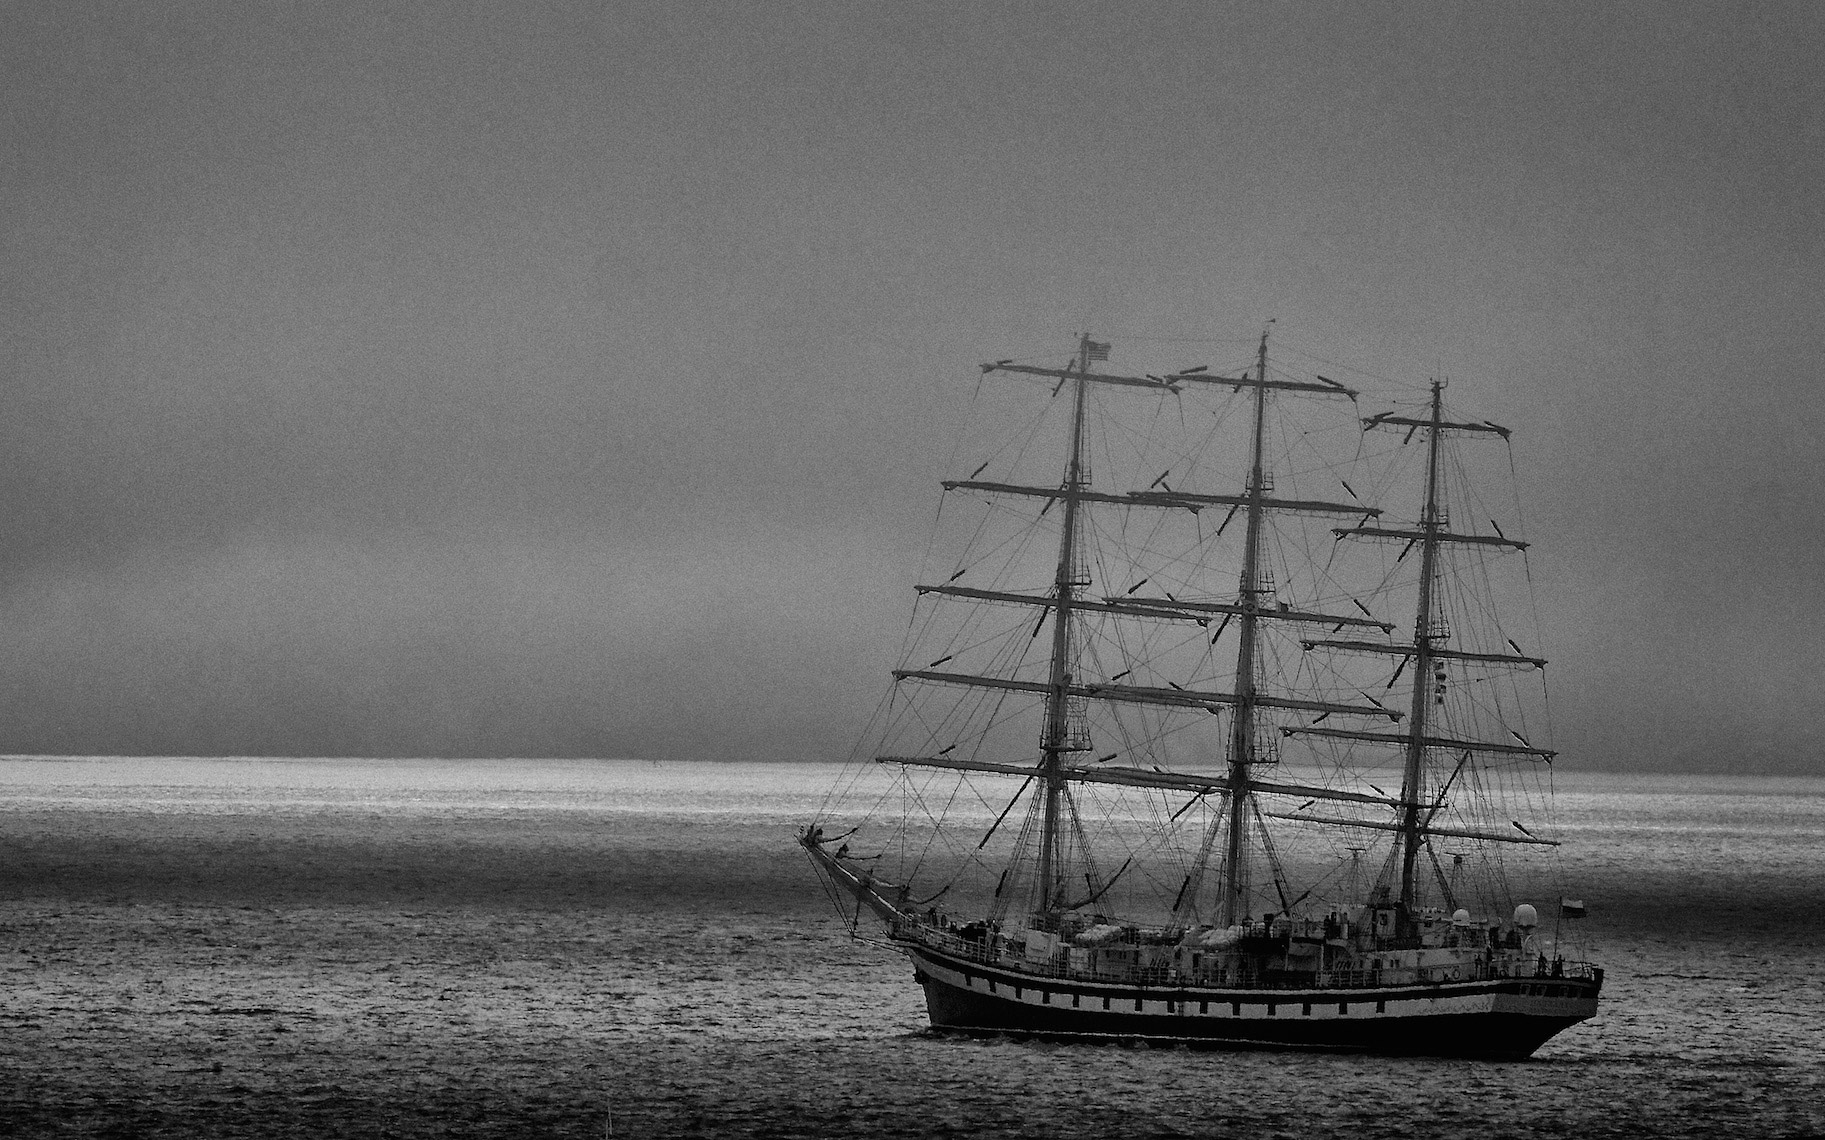 Russian Tall Ship, Pallada